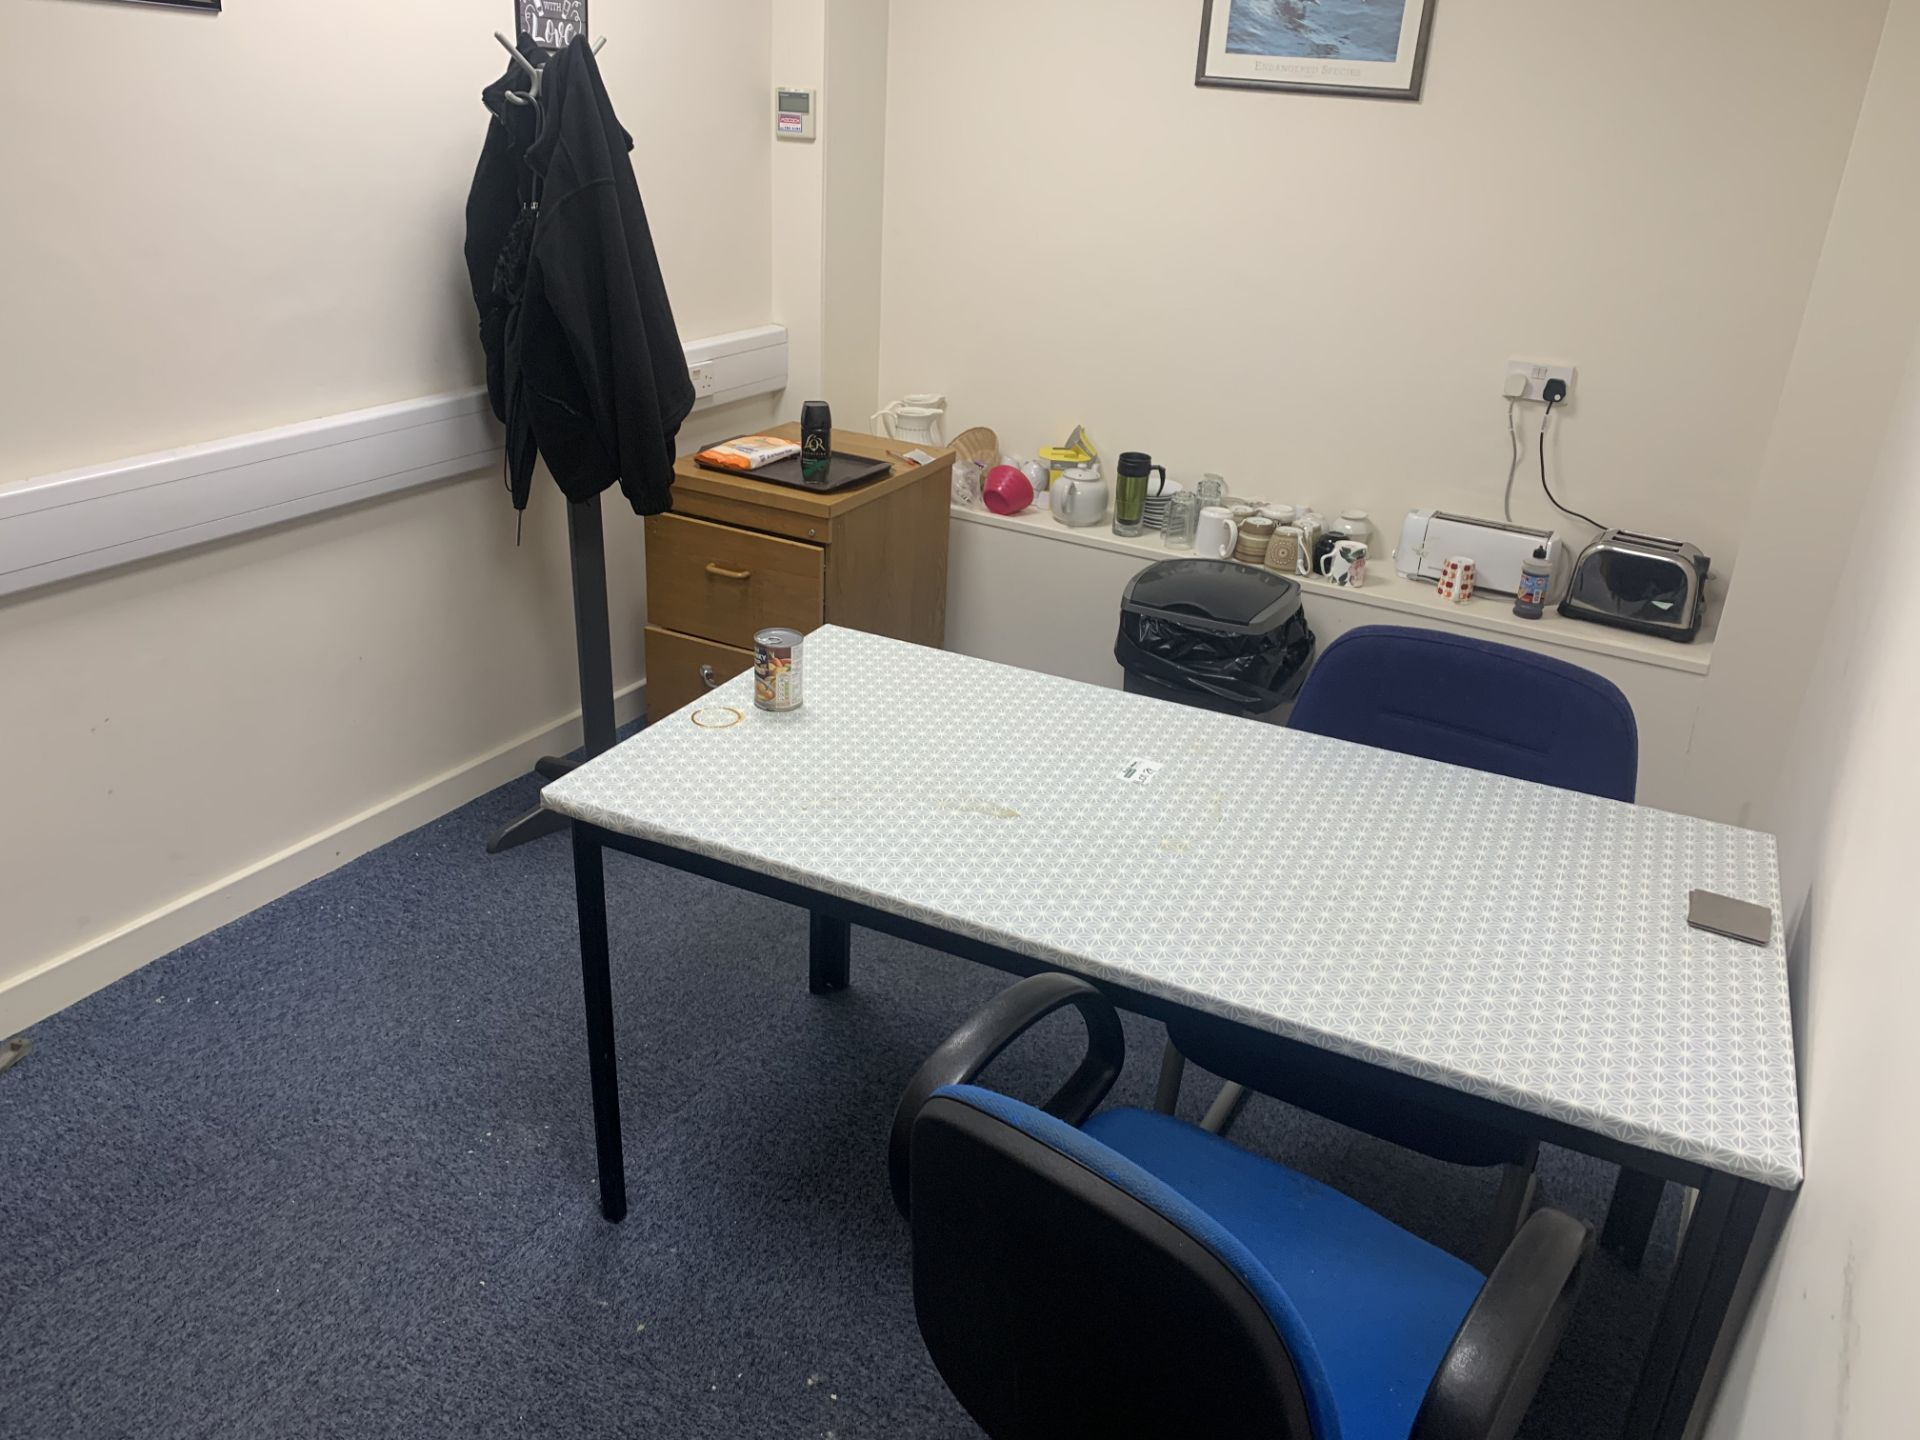 CONTENTS OF CANTEEN TO INCLUDE TOASTERS WATER DISPENSER, 2 CHAIRS, TABLE MUGS, 2 DRAWER CABINET,